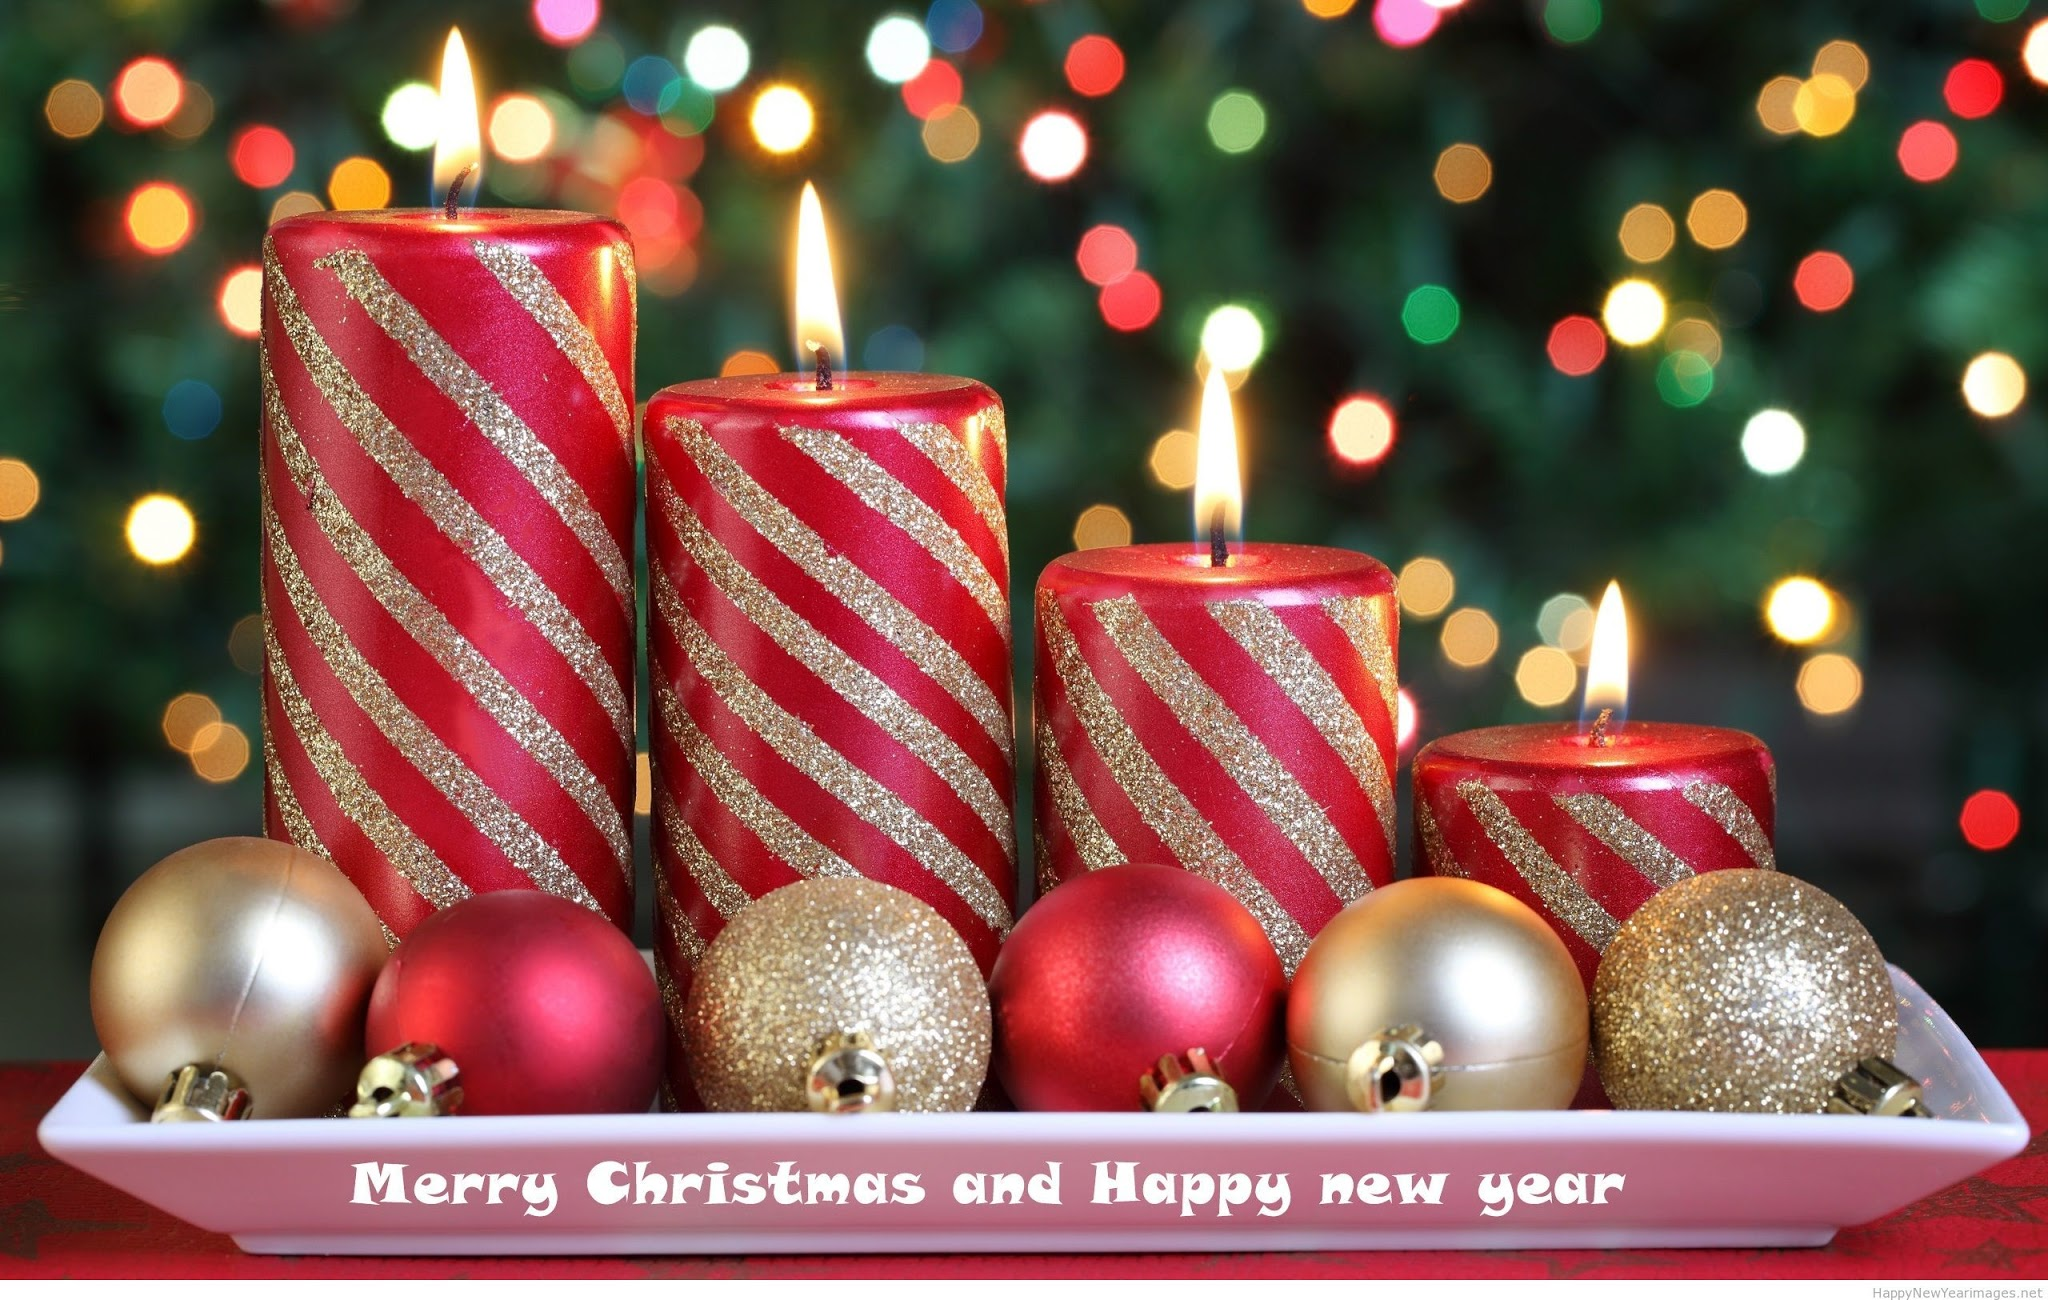 merry christmas happy new year greetings hd 1